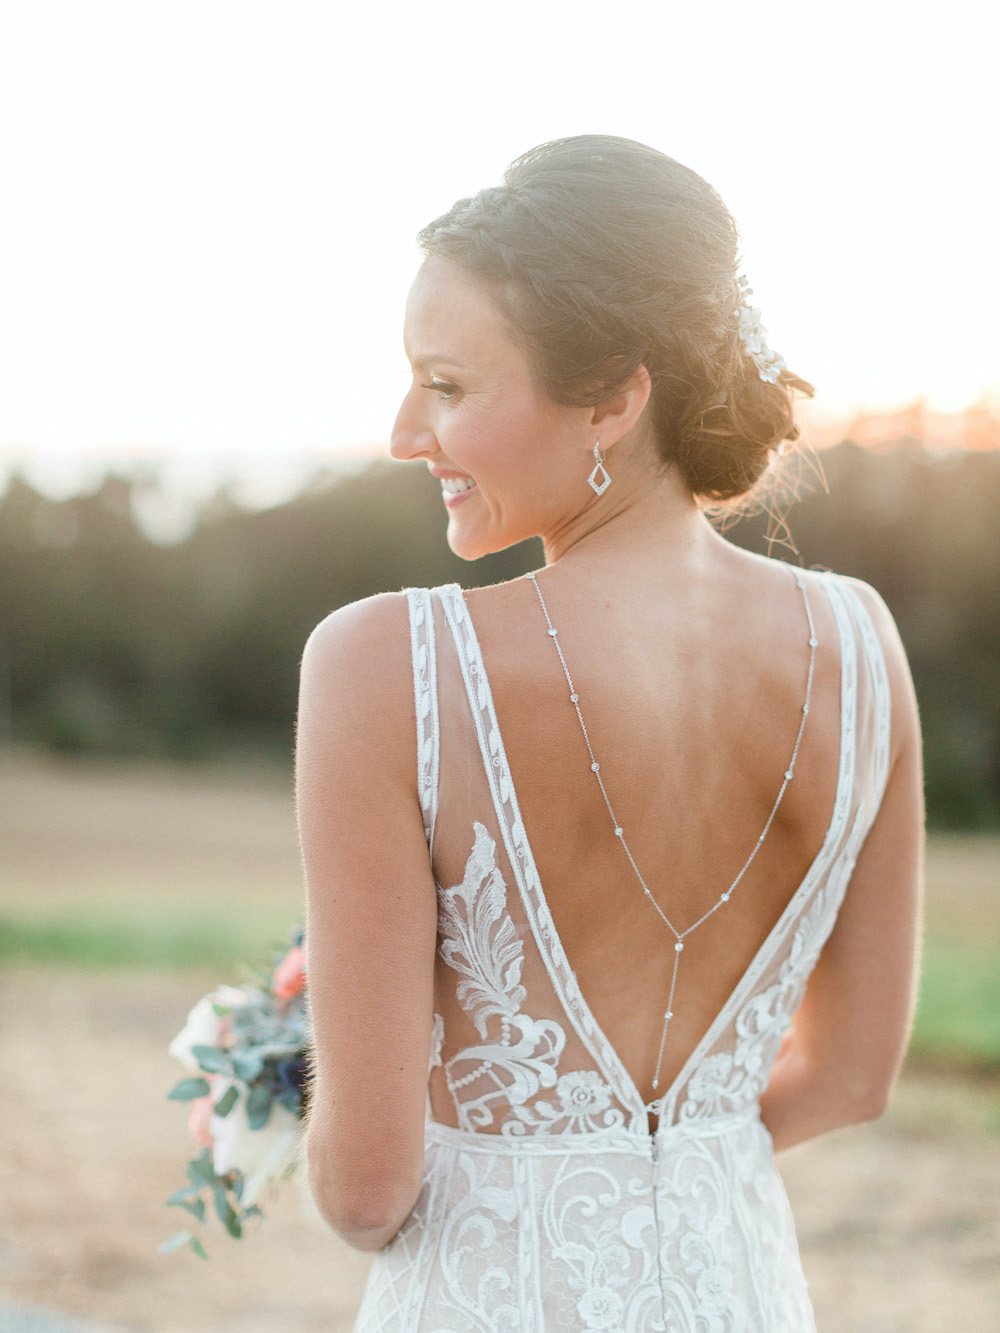 Dress Gown Bride Bridal Lace Back Necklace Pacific Coast Wedding Mallory Miya Photography